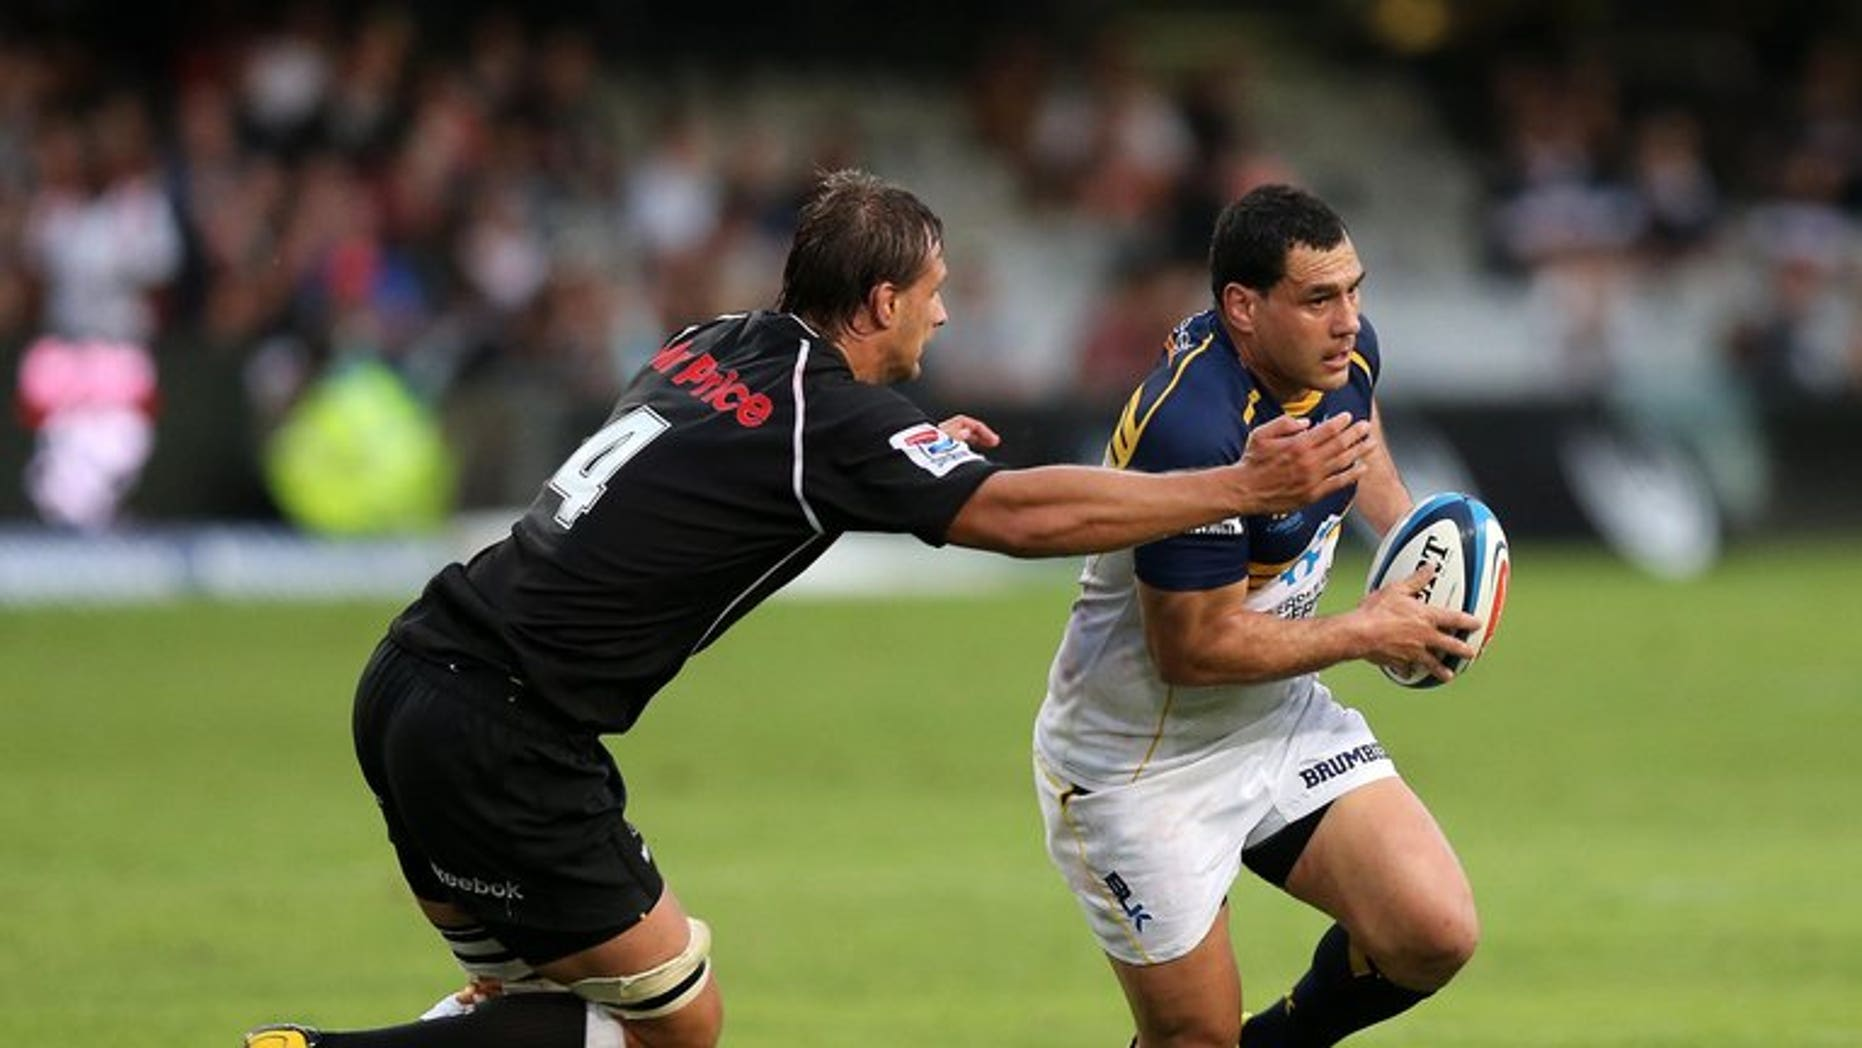 George Smith of the Brumbies (R) is tackled by Anton Bressler of the Sharks on March 16, 2013. The injury-hit Wallabies called up veteran flanker Smith among three reinforcements for the squad for next weekend's make-or-break Test with the British and Irish Lions.